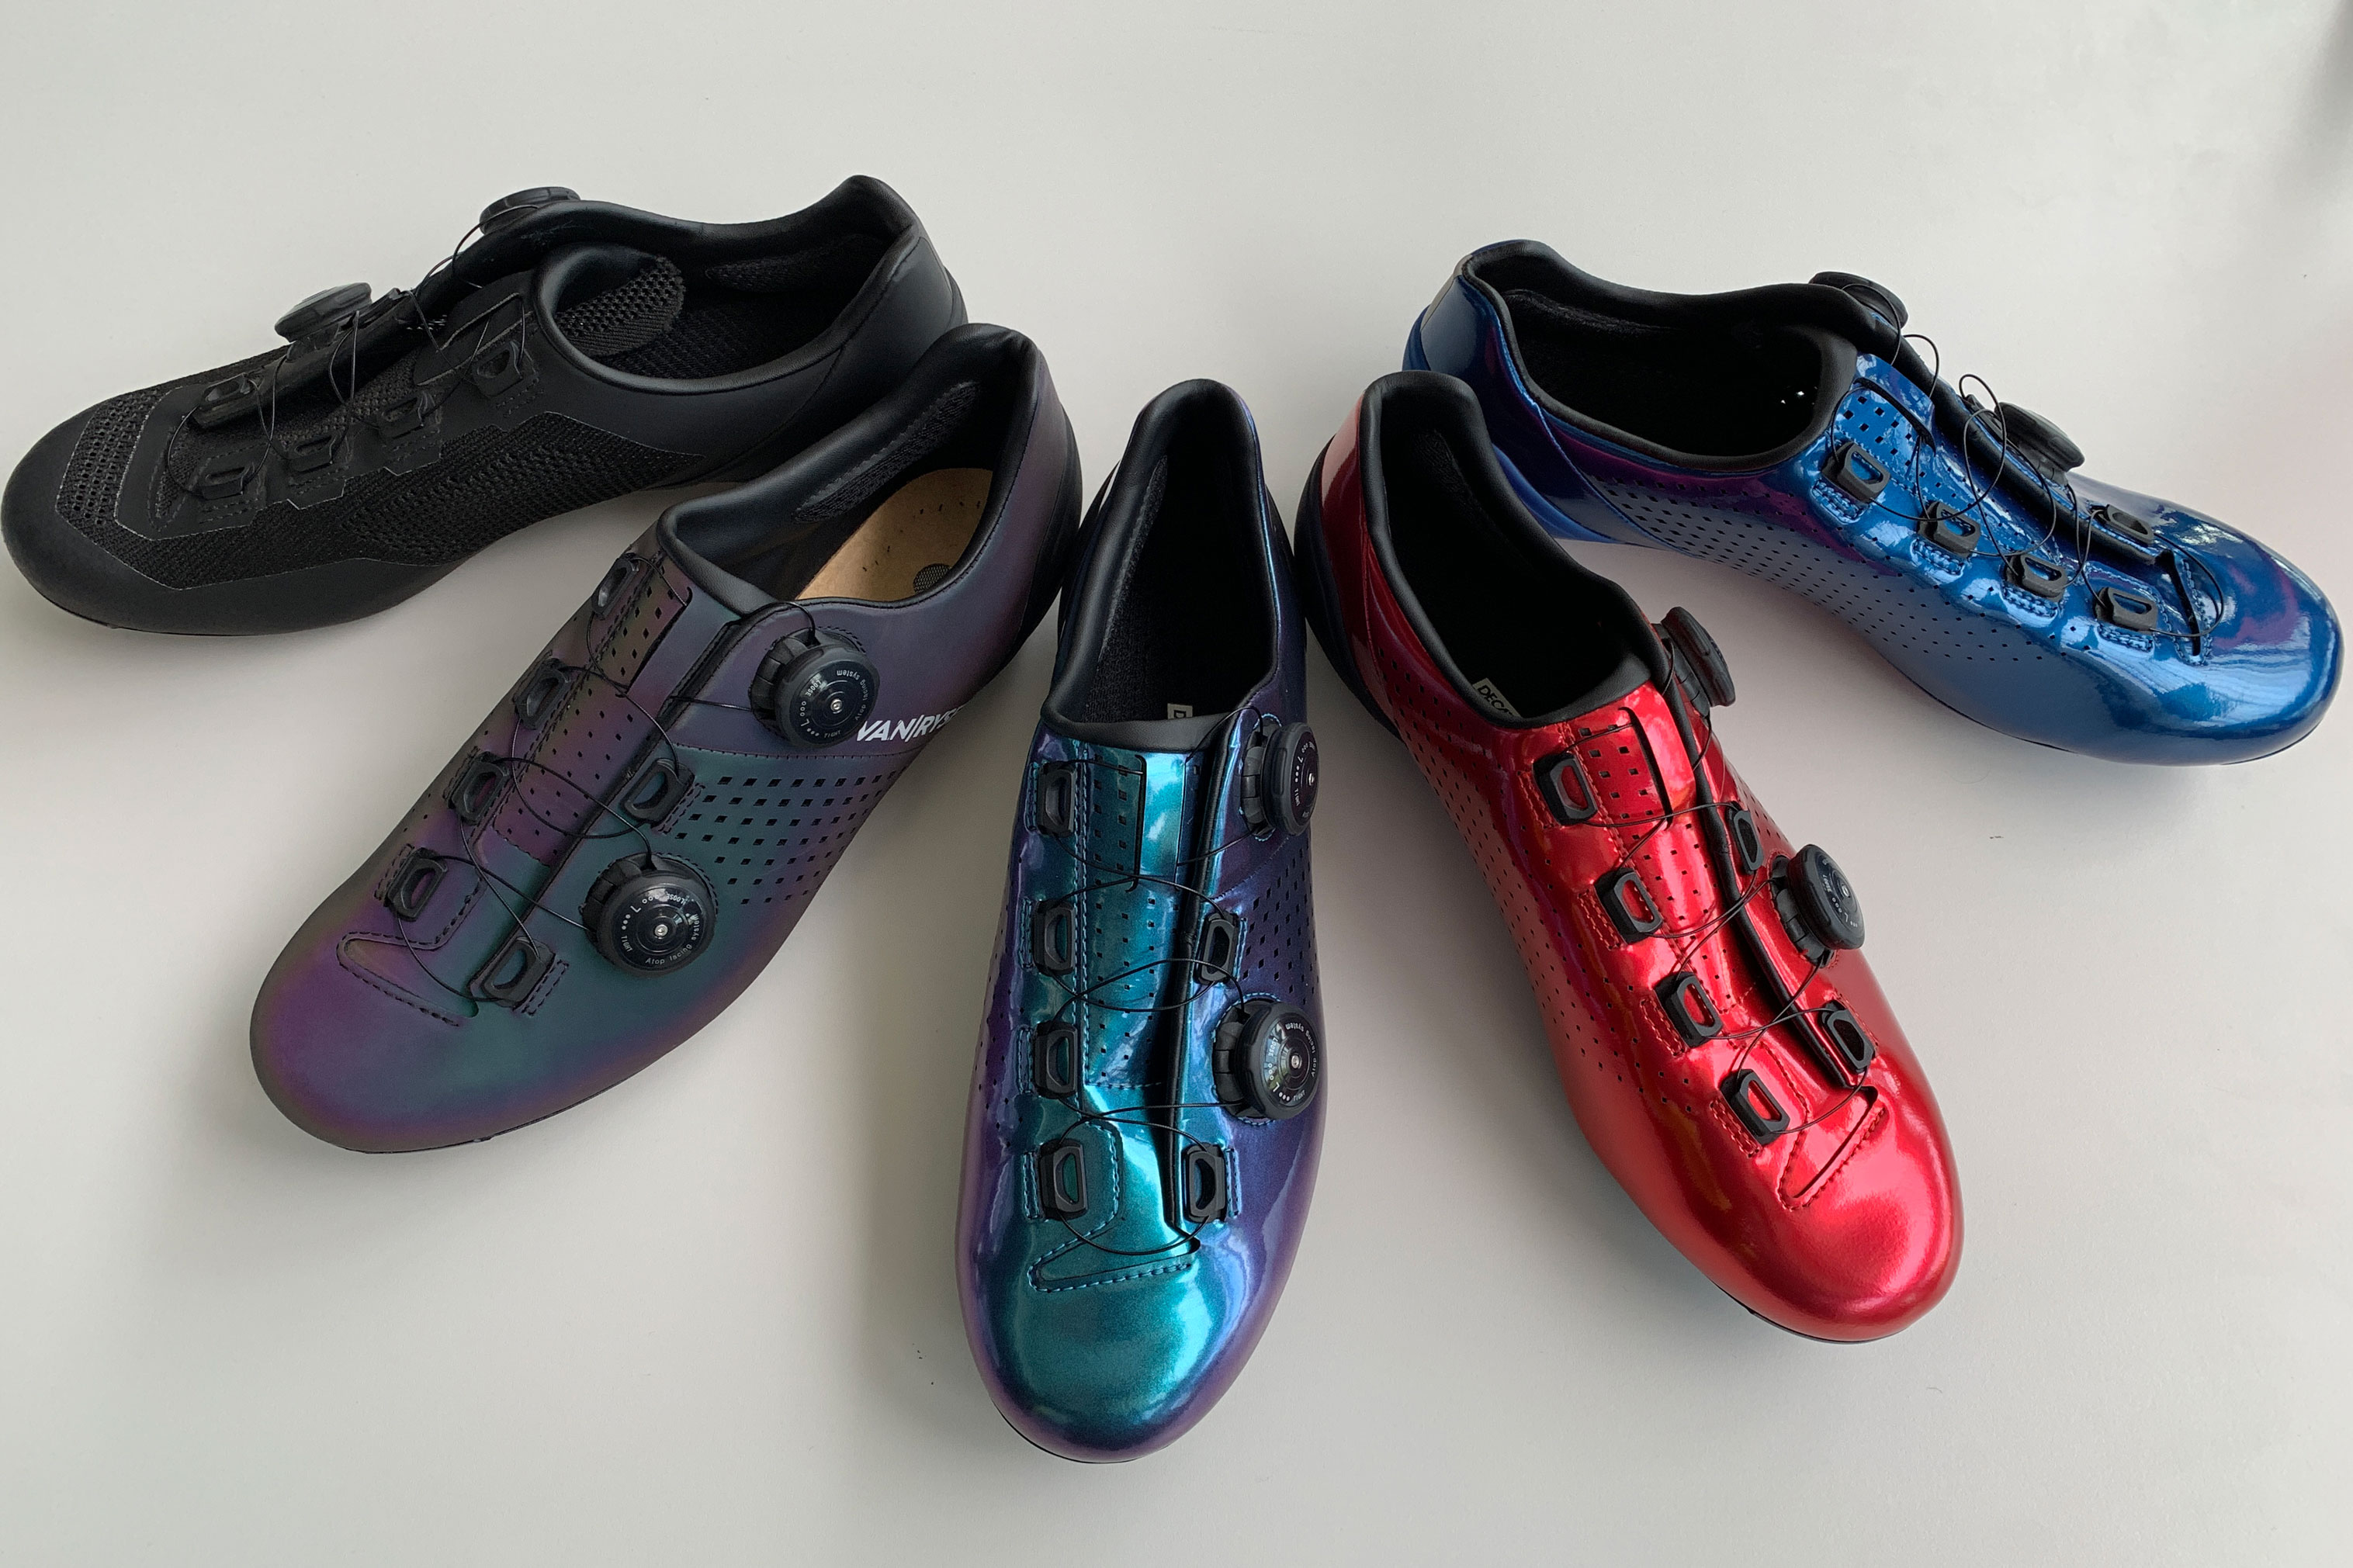 Van Rysel road cycling shoes